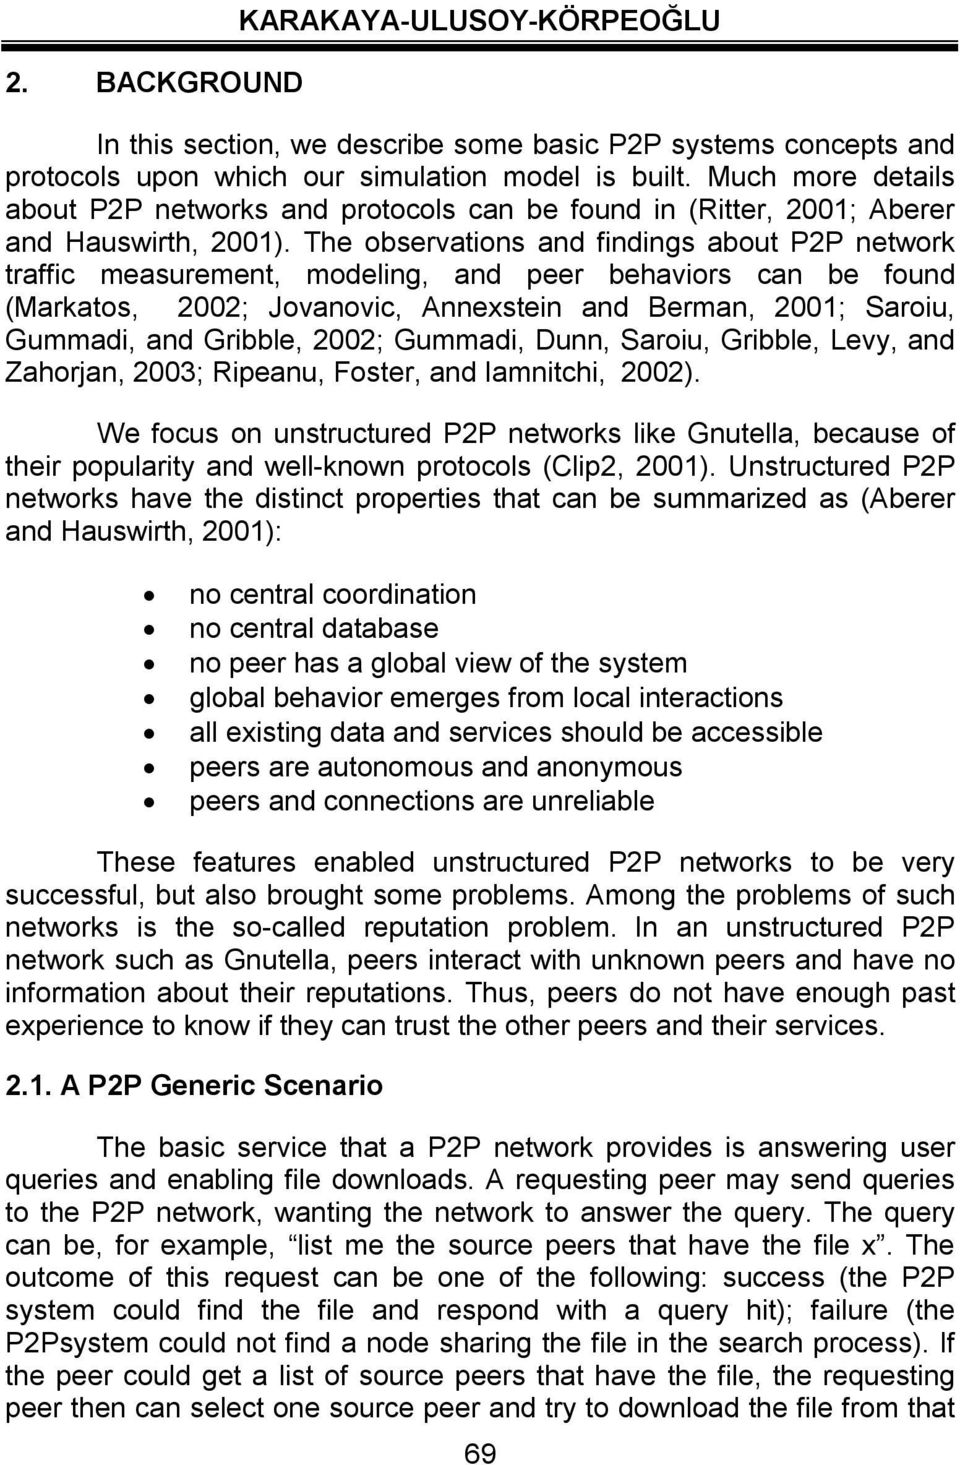 The observations and findings about P2P network traffic measurement, modeling, and peer behaviors can be found (Markatos, 2002; Jovanovic, Annexstein and Berman, 2001; Saroiu, Gummadi, and Gribble,